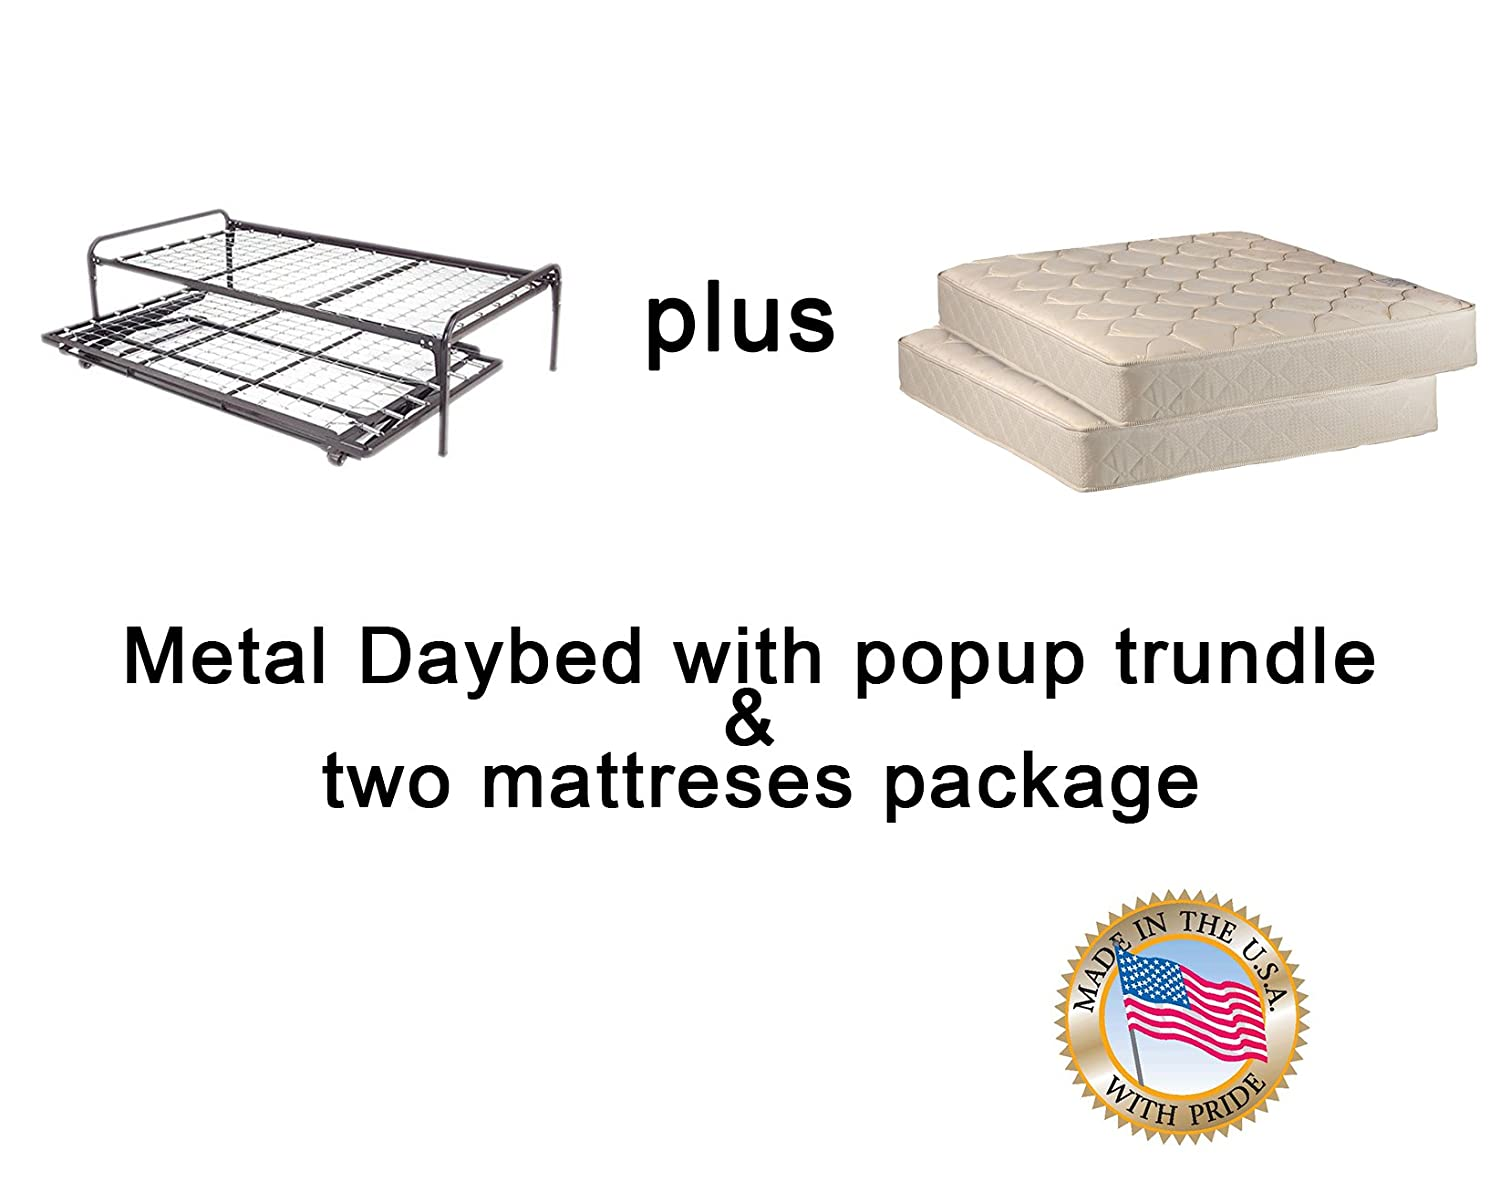 Twin Size Metal Day Bed Daybed Frame Pop up Trundle with Mattresses Included Package Deal